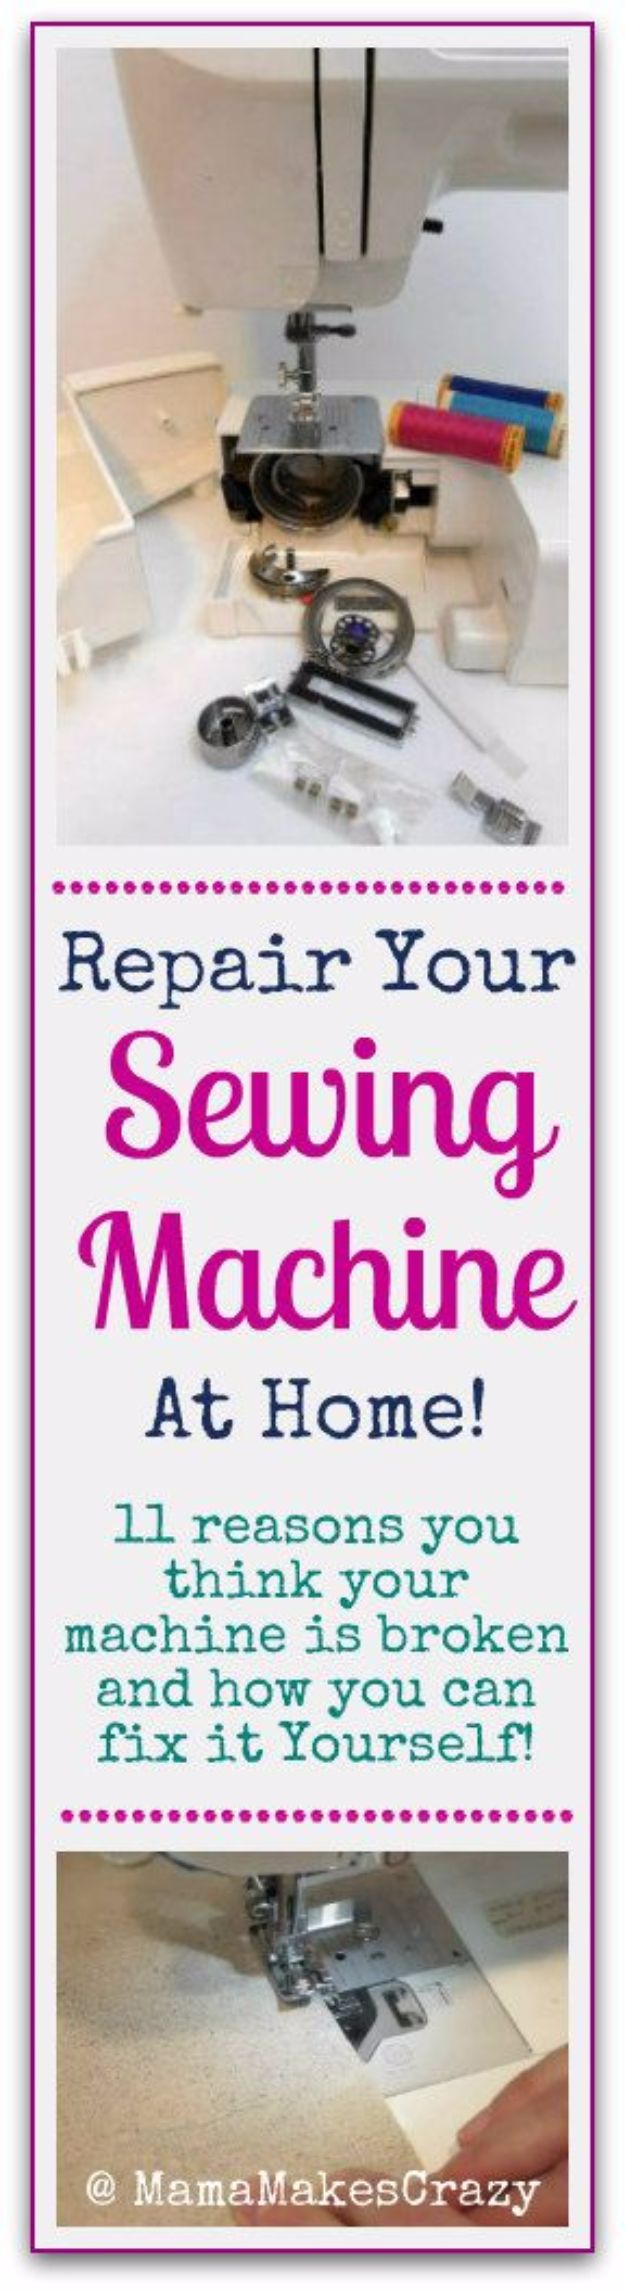 Easy Home Repair Hacks - Repair Your Sewing Machine - Quick Ways To Fix Your Home With Cheap and Fast DIY Projects - Step by step Tutorials, Good Ideas for Renovating, Simple Tips and Tricks for Home Improvement on A Budget #diy #homeimprovement